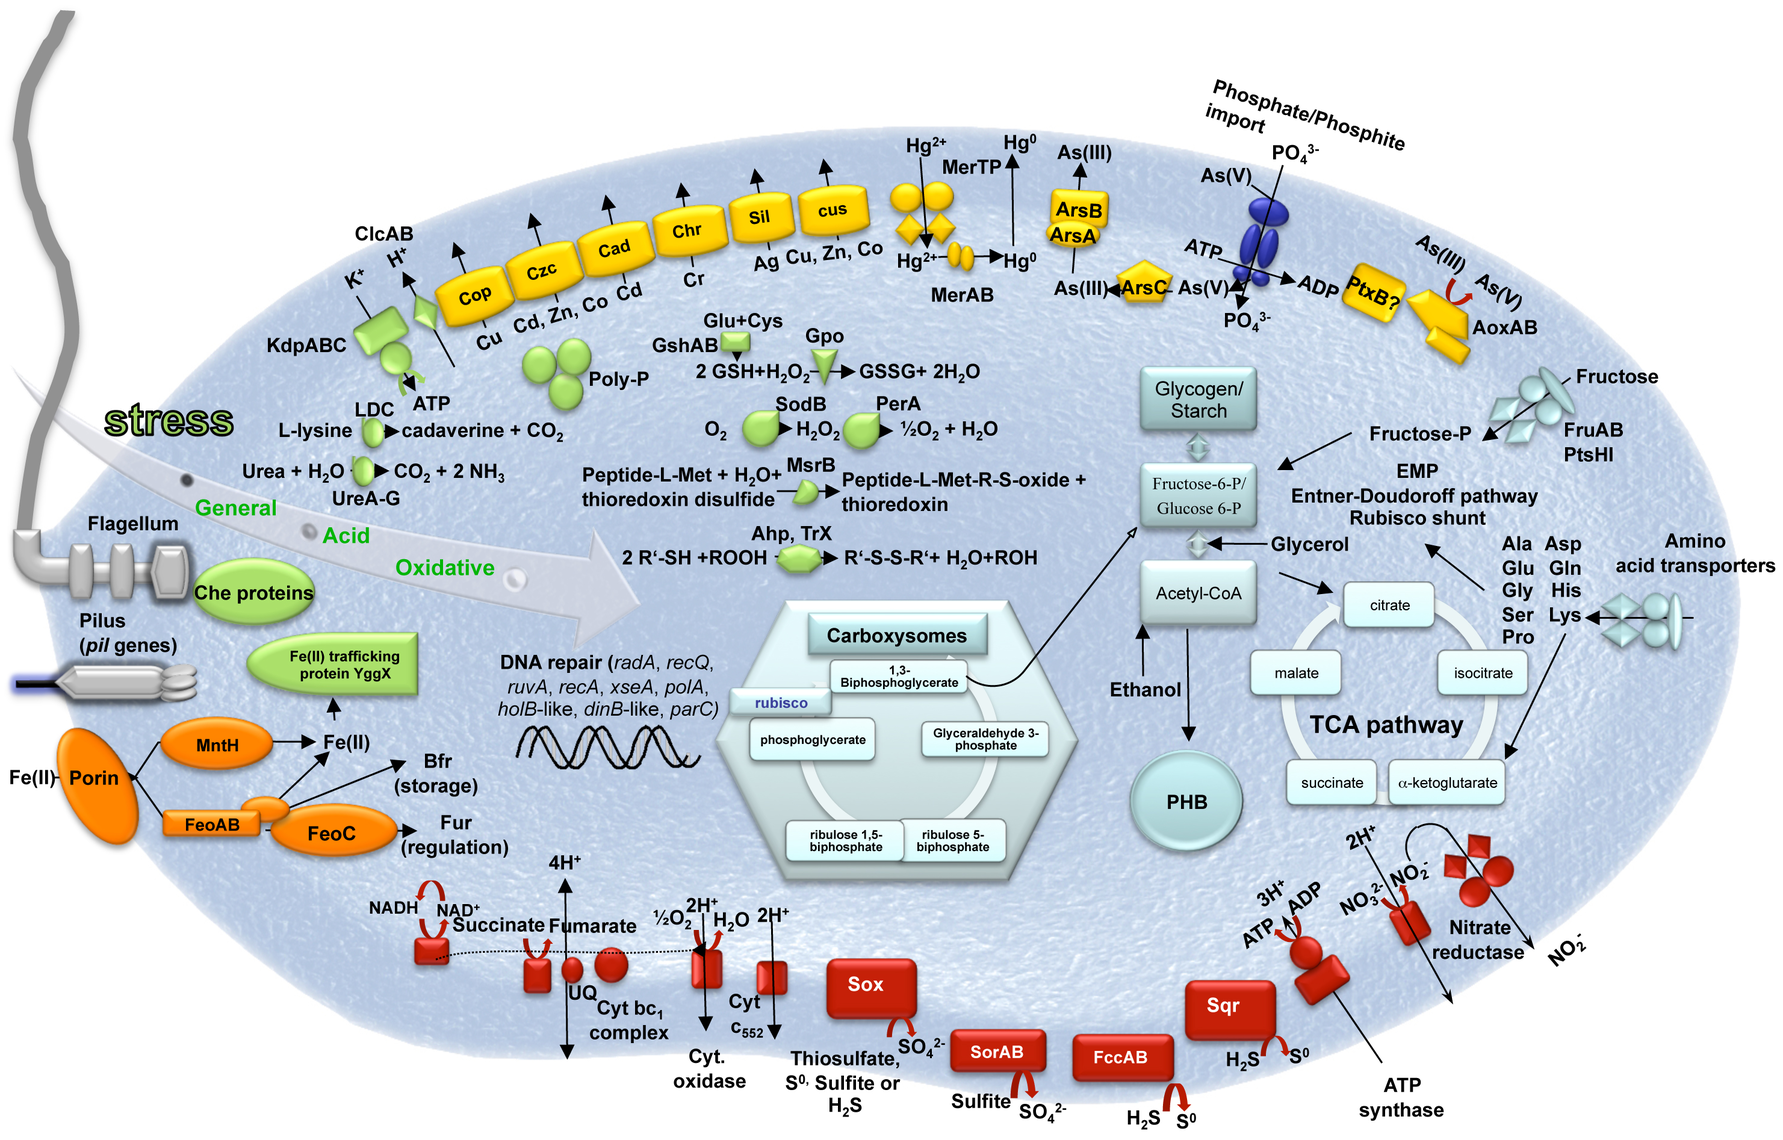 Schematic representation of the major metabolic pathways in <i>Thiomonas</i> sp. 3As.